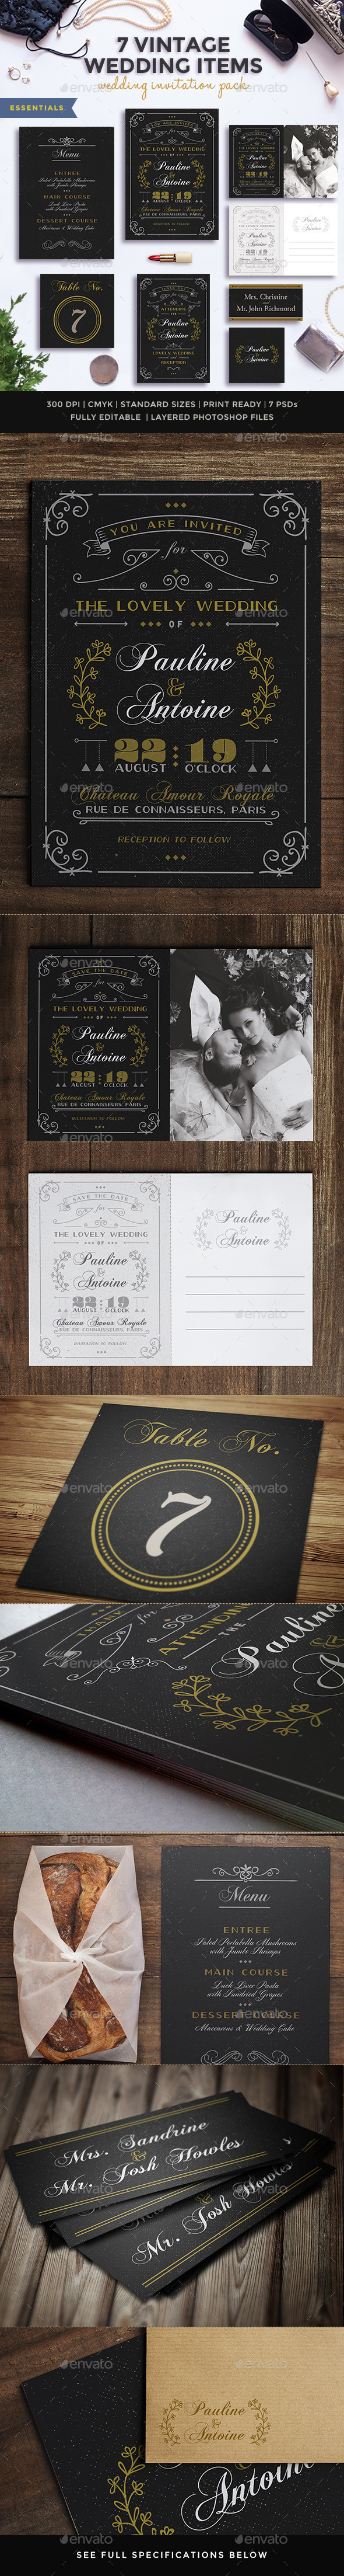 GraphicRiver 7 Vintage Items Wedding Pack V 11214193